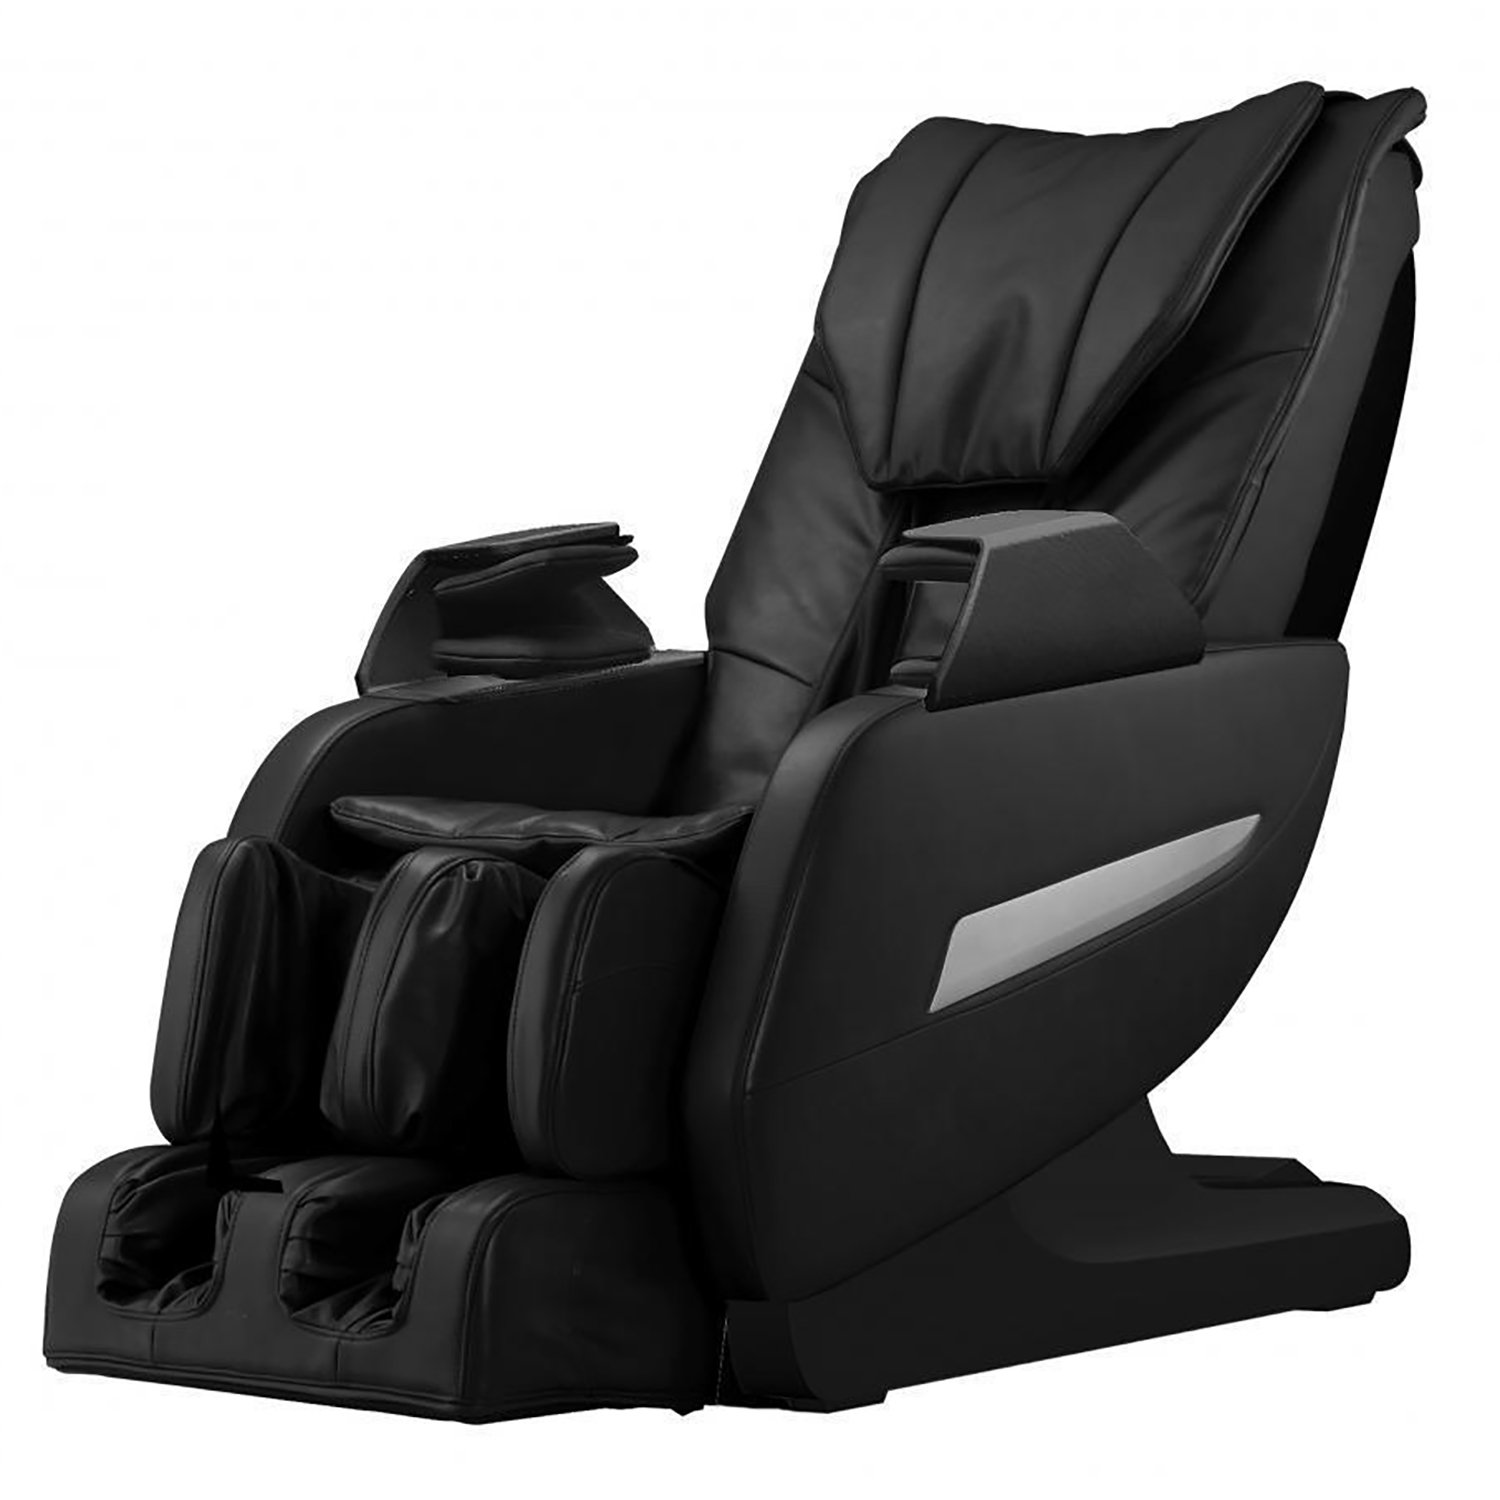 ideas chairs for furniture recliner interior on epic designing stressless chair modern massage with home sale